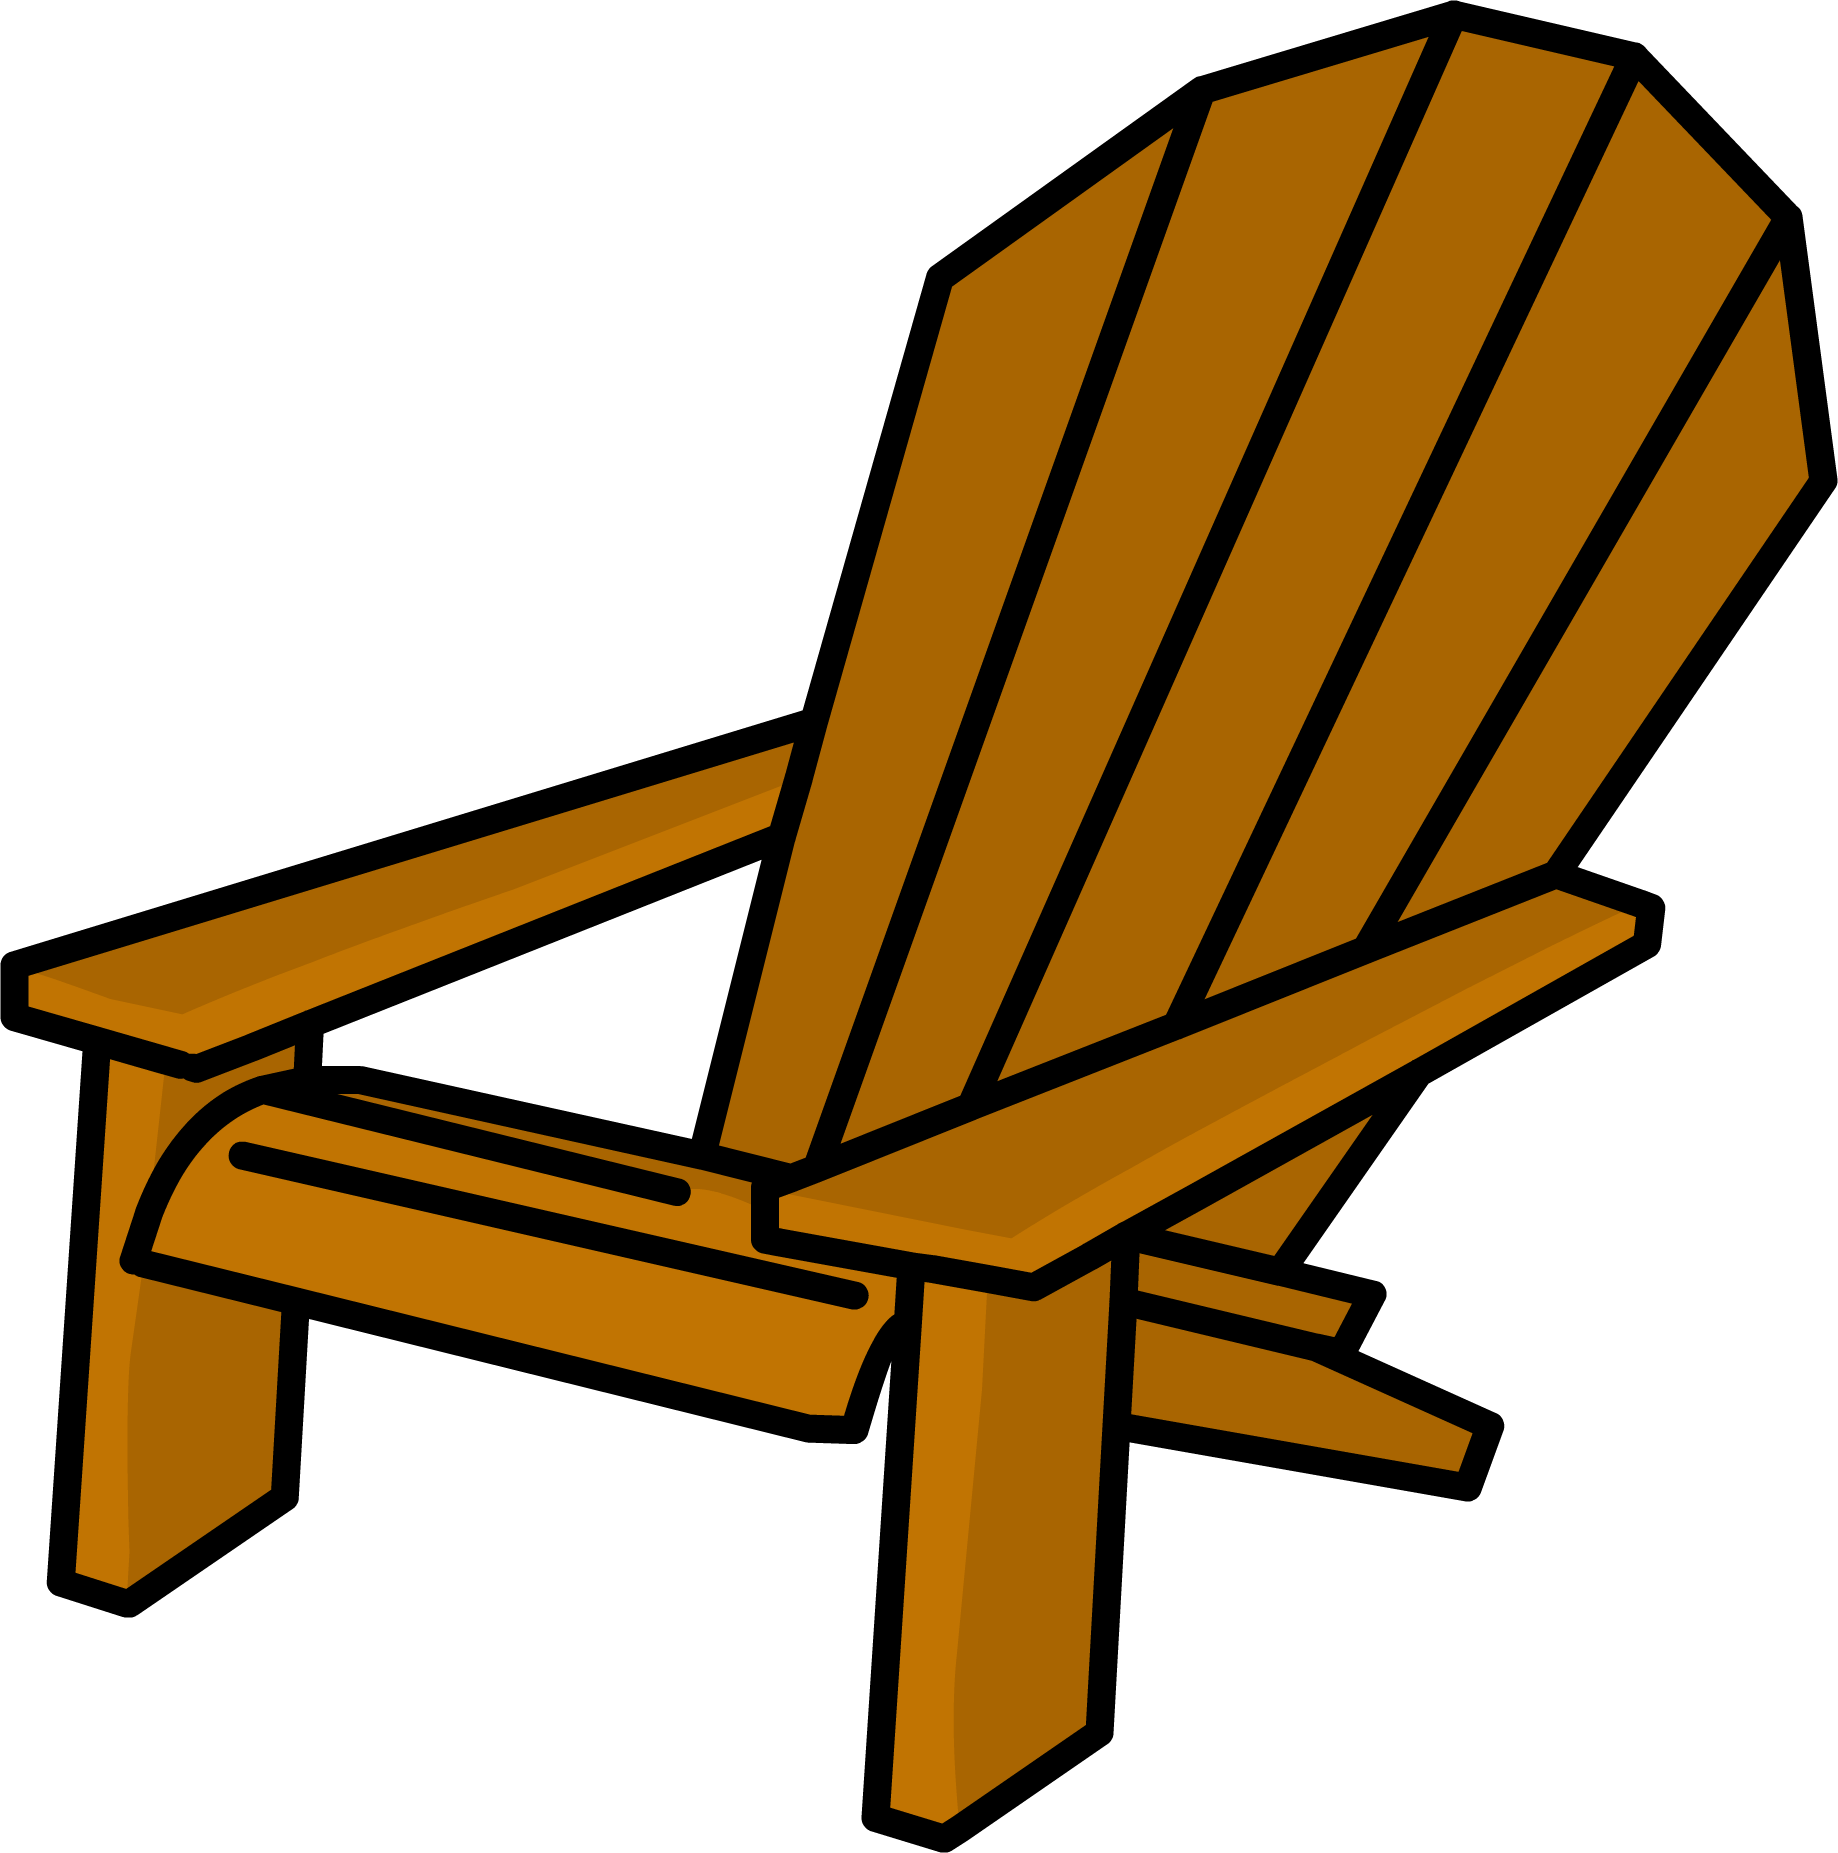 Chair clipart deck chair. Lounging club penguin wiki